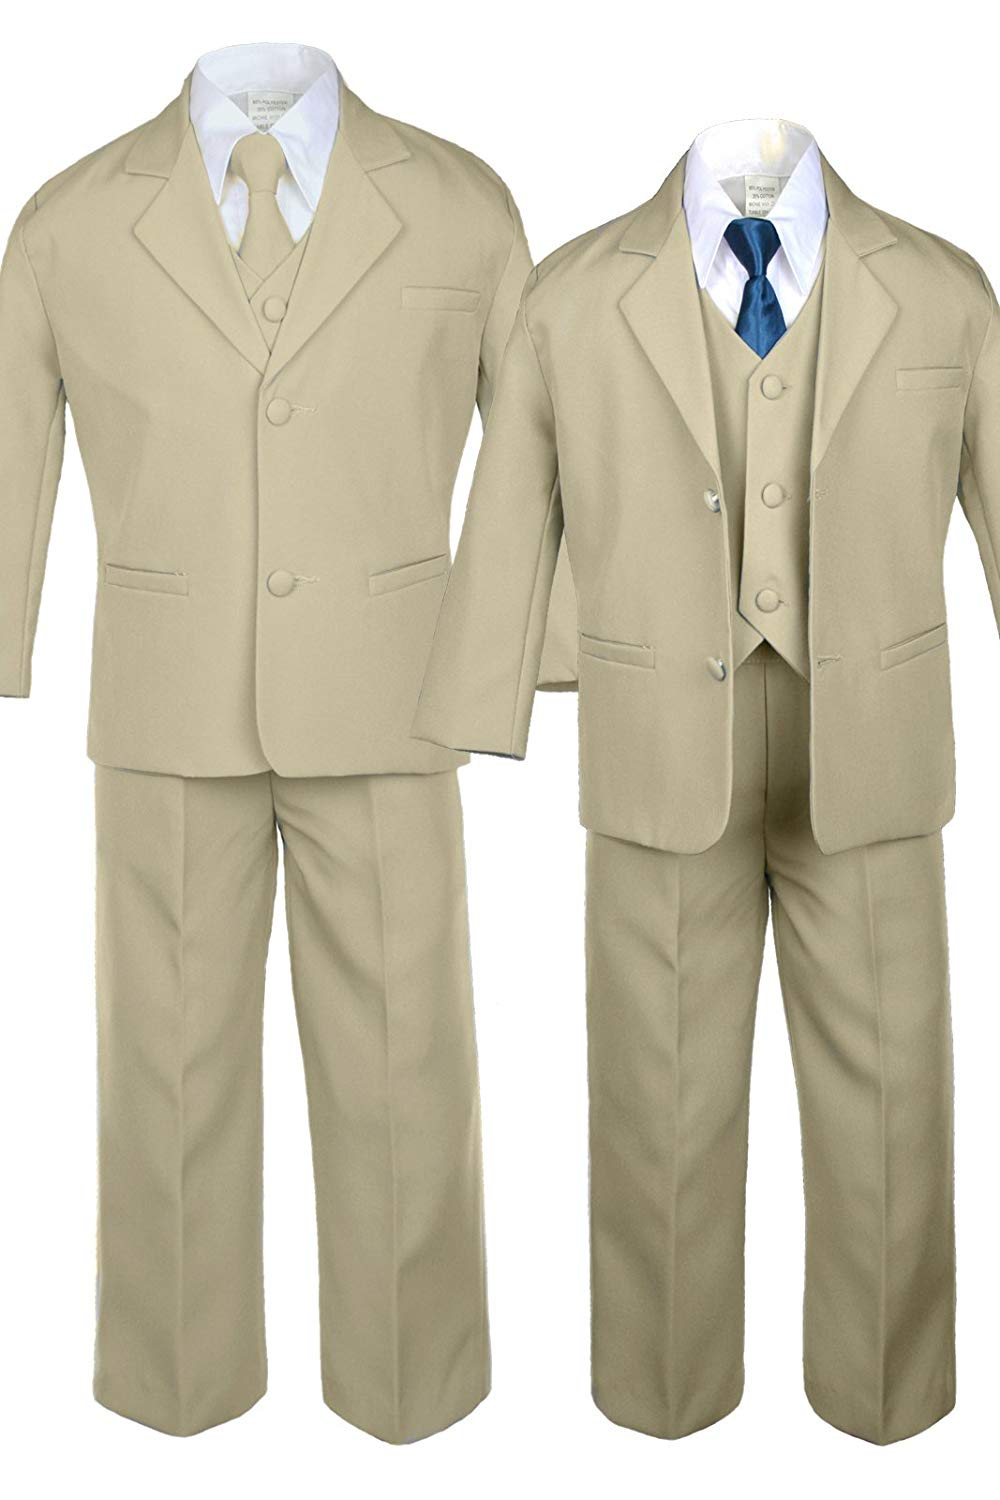 117e43dca4e2 Get Quotations · 6pc Boy Khaki Vest Set Formal Tuxedo Suits with Satin  Green Teal Necktie Baby to Teen